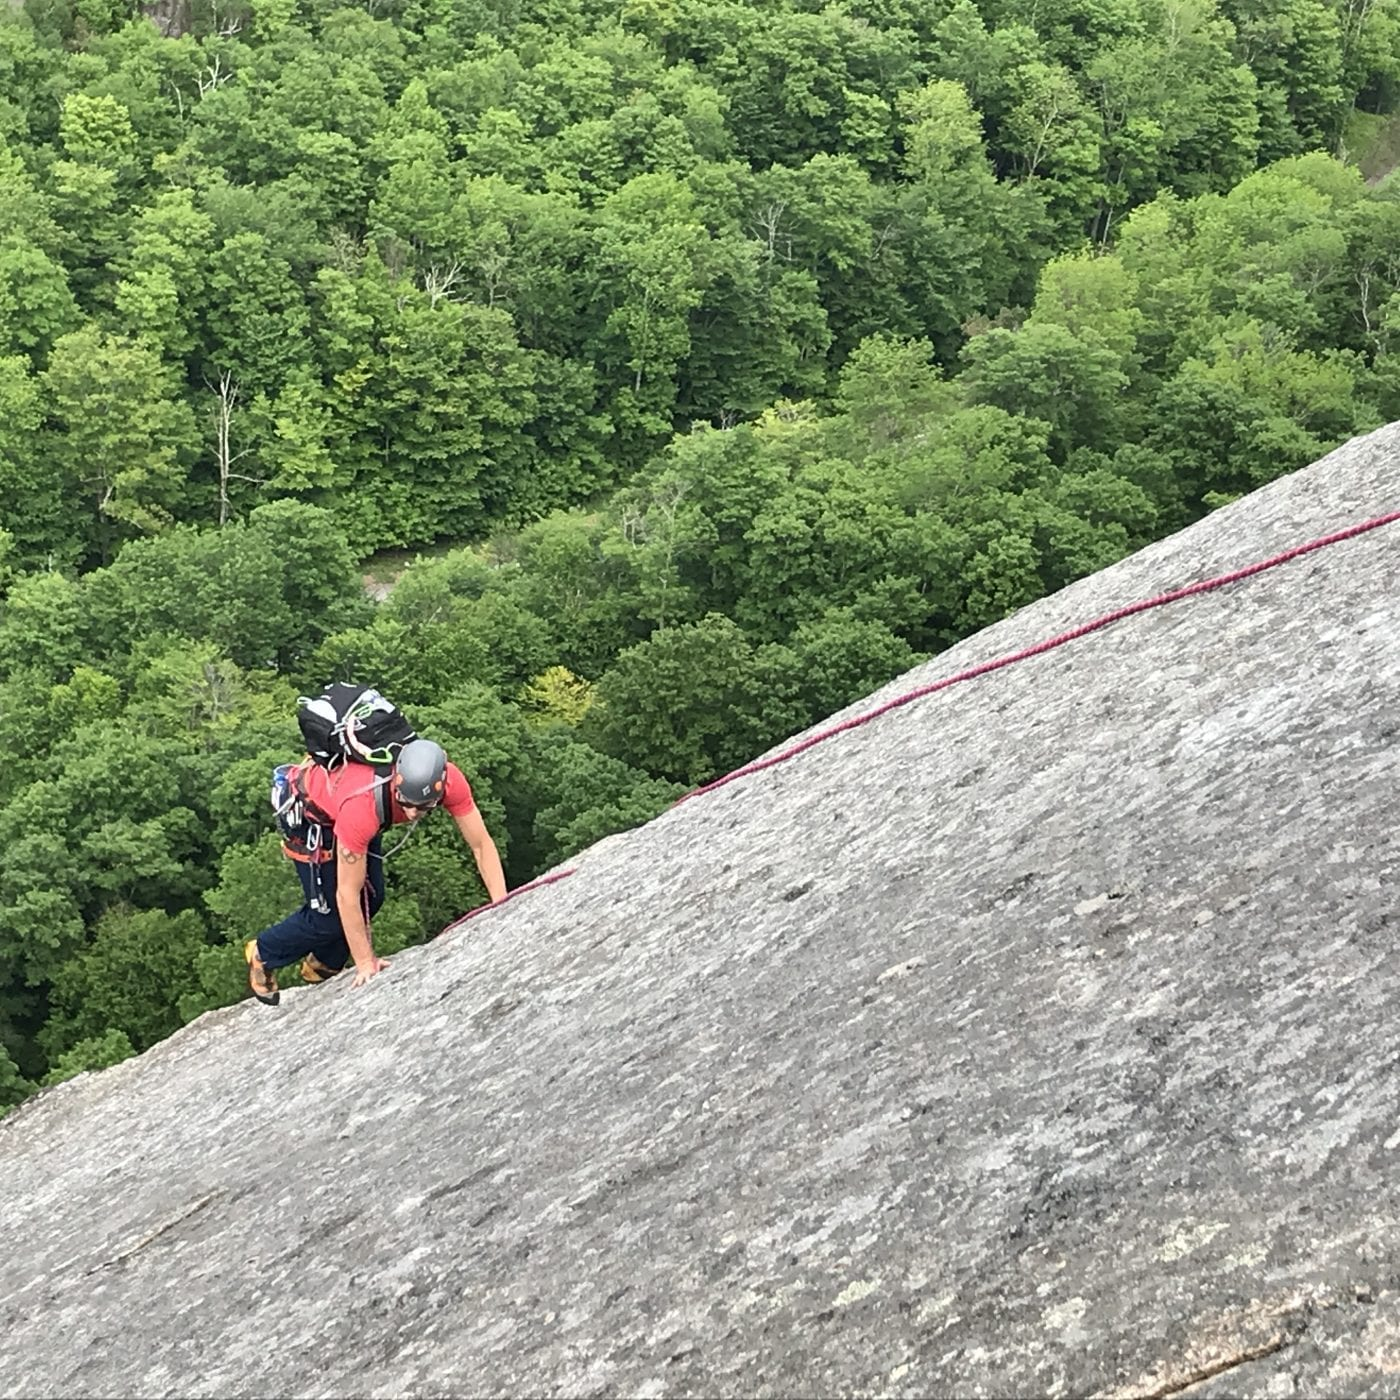 Adirondack rock climbing guide service won't open